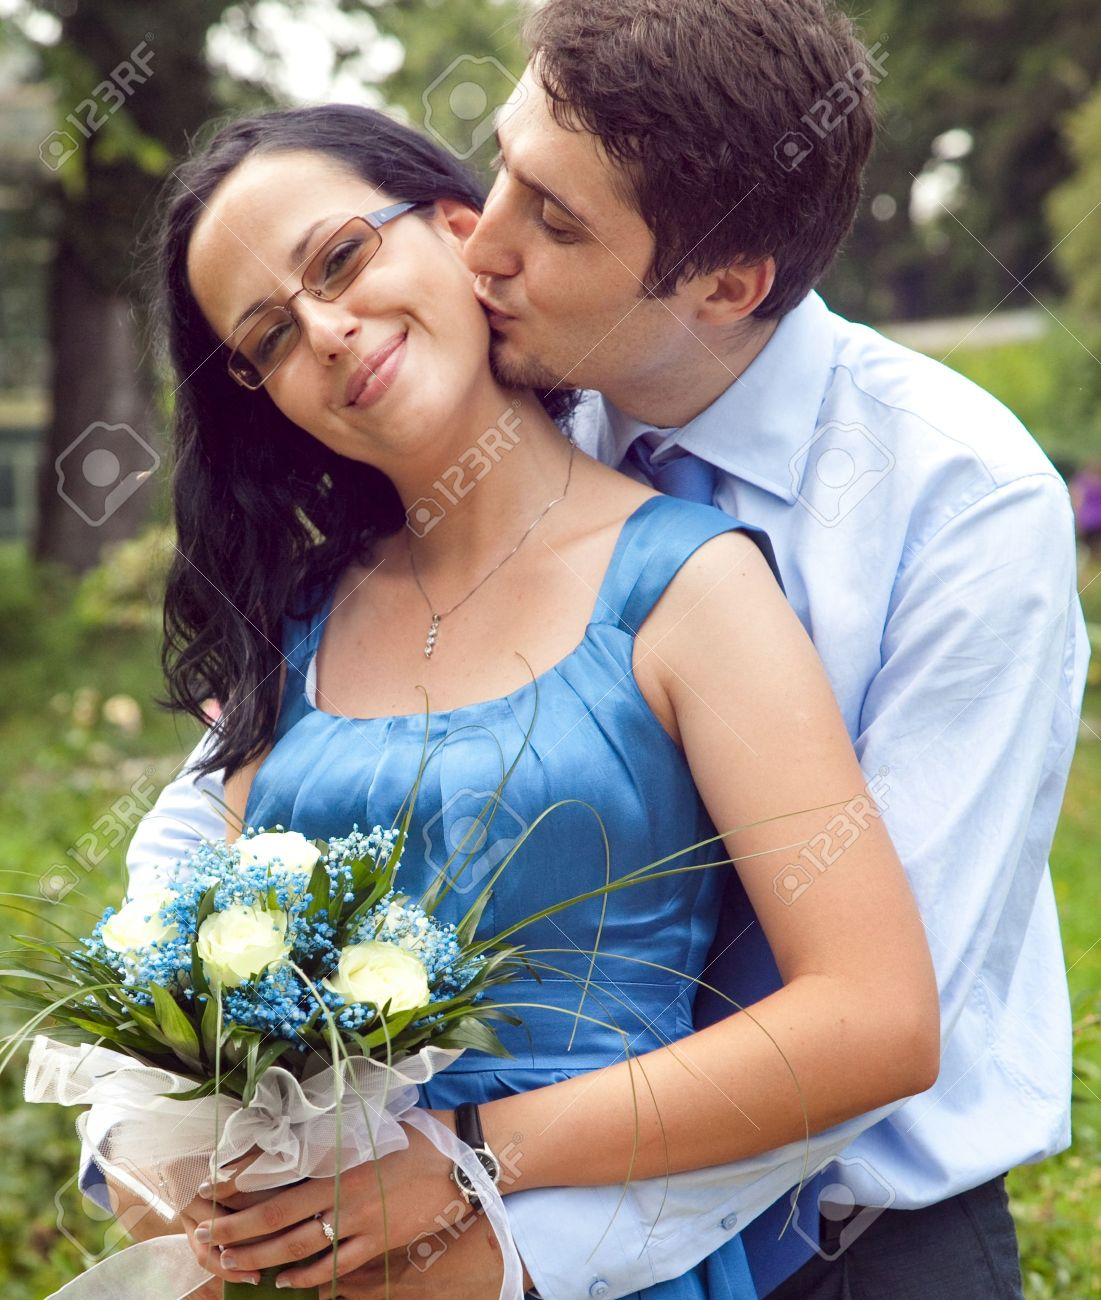 cute couple in a kiss and hug romantic moment stock photo, picture